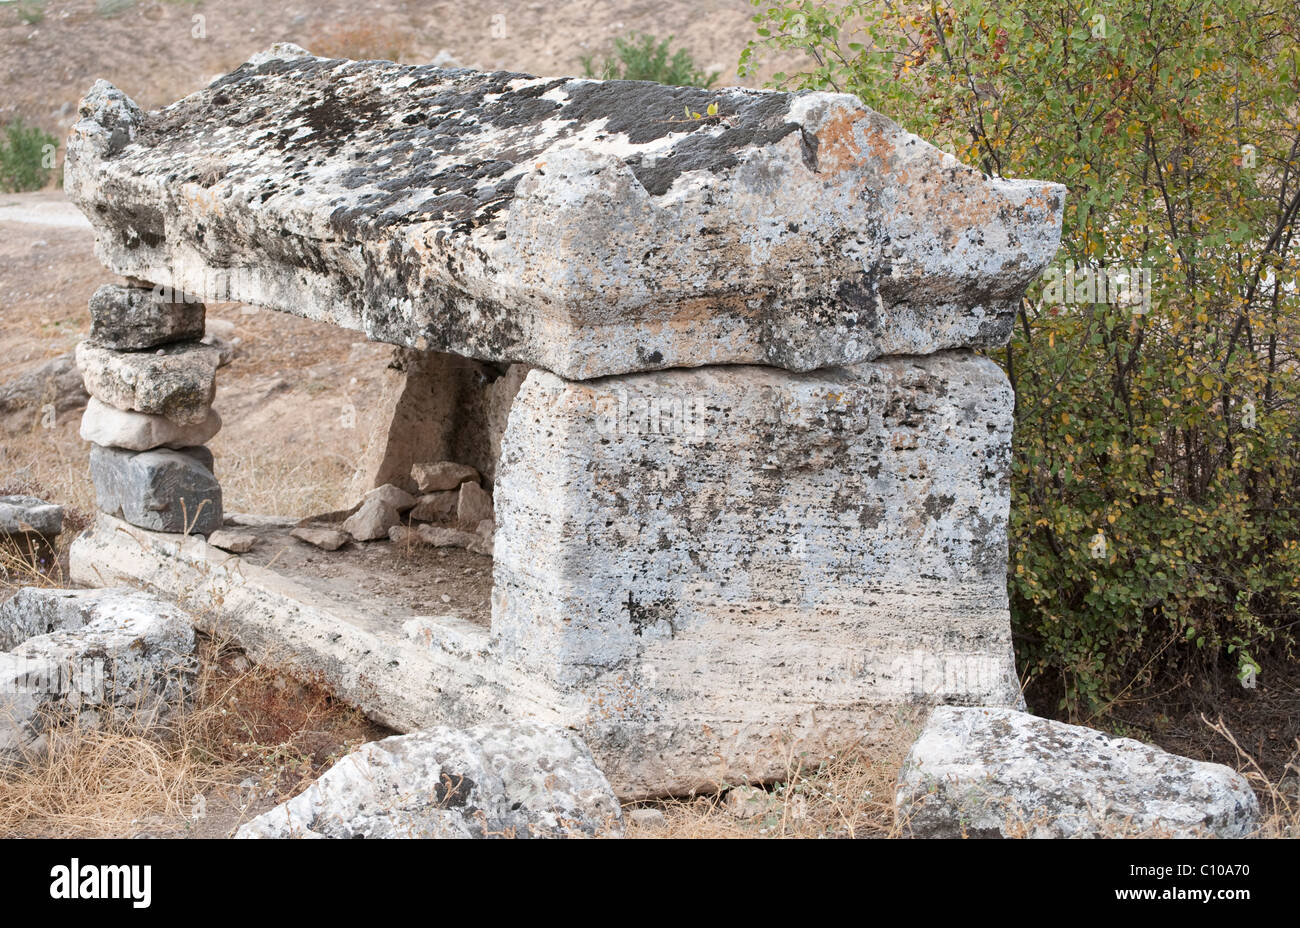 An ancient tomb in the Necropolis of Hierapolis - Stock Image